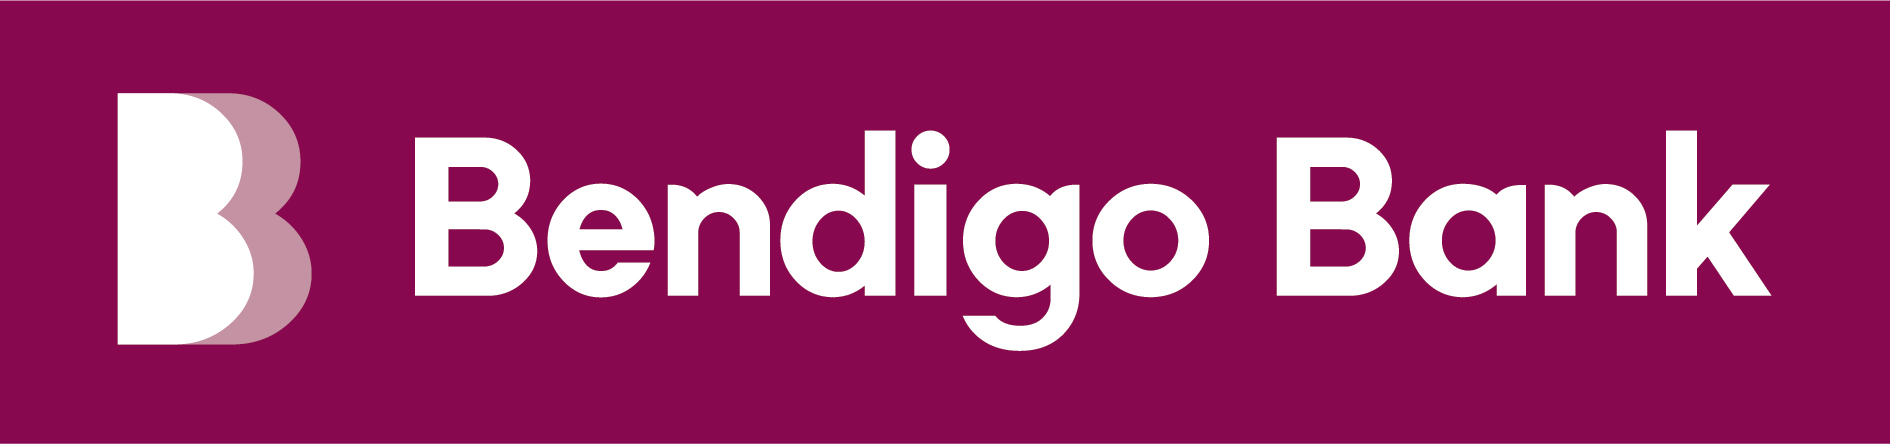 Bendigo Bank Logan Business Expo